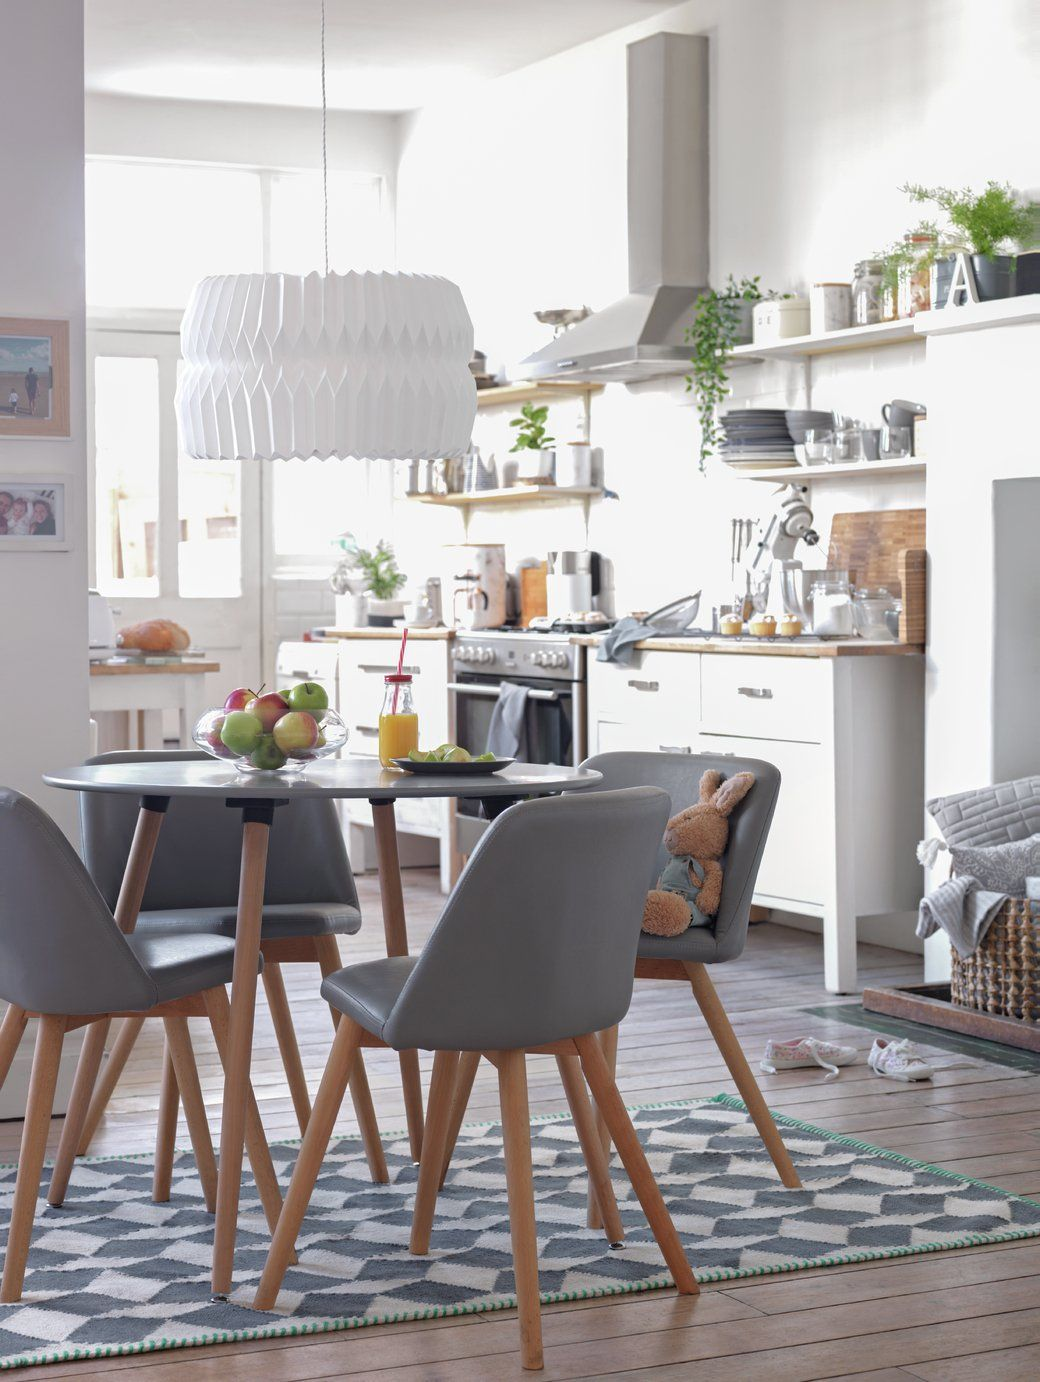 Buy Argos Home Quattro Grey Dining Table 4 Grey Chairs Space